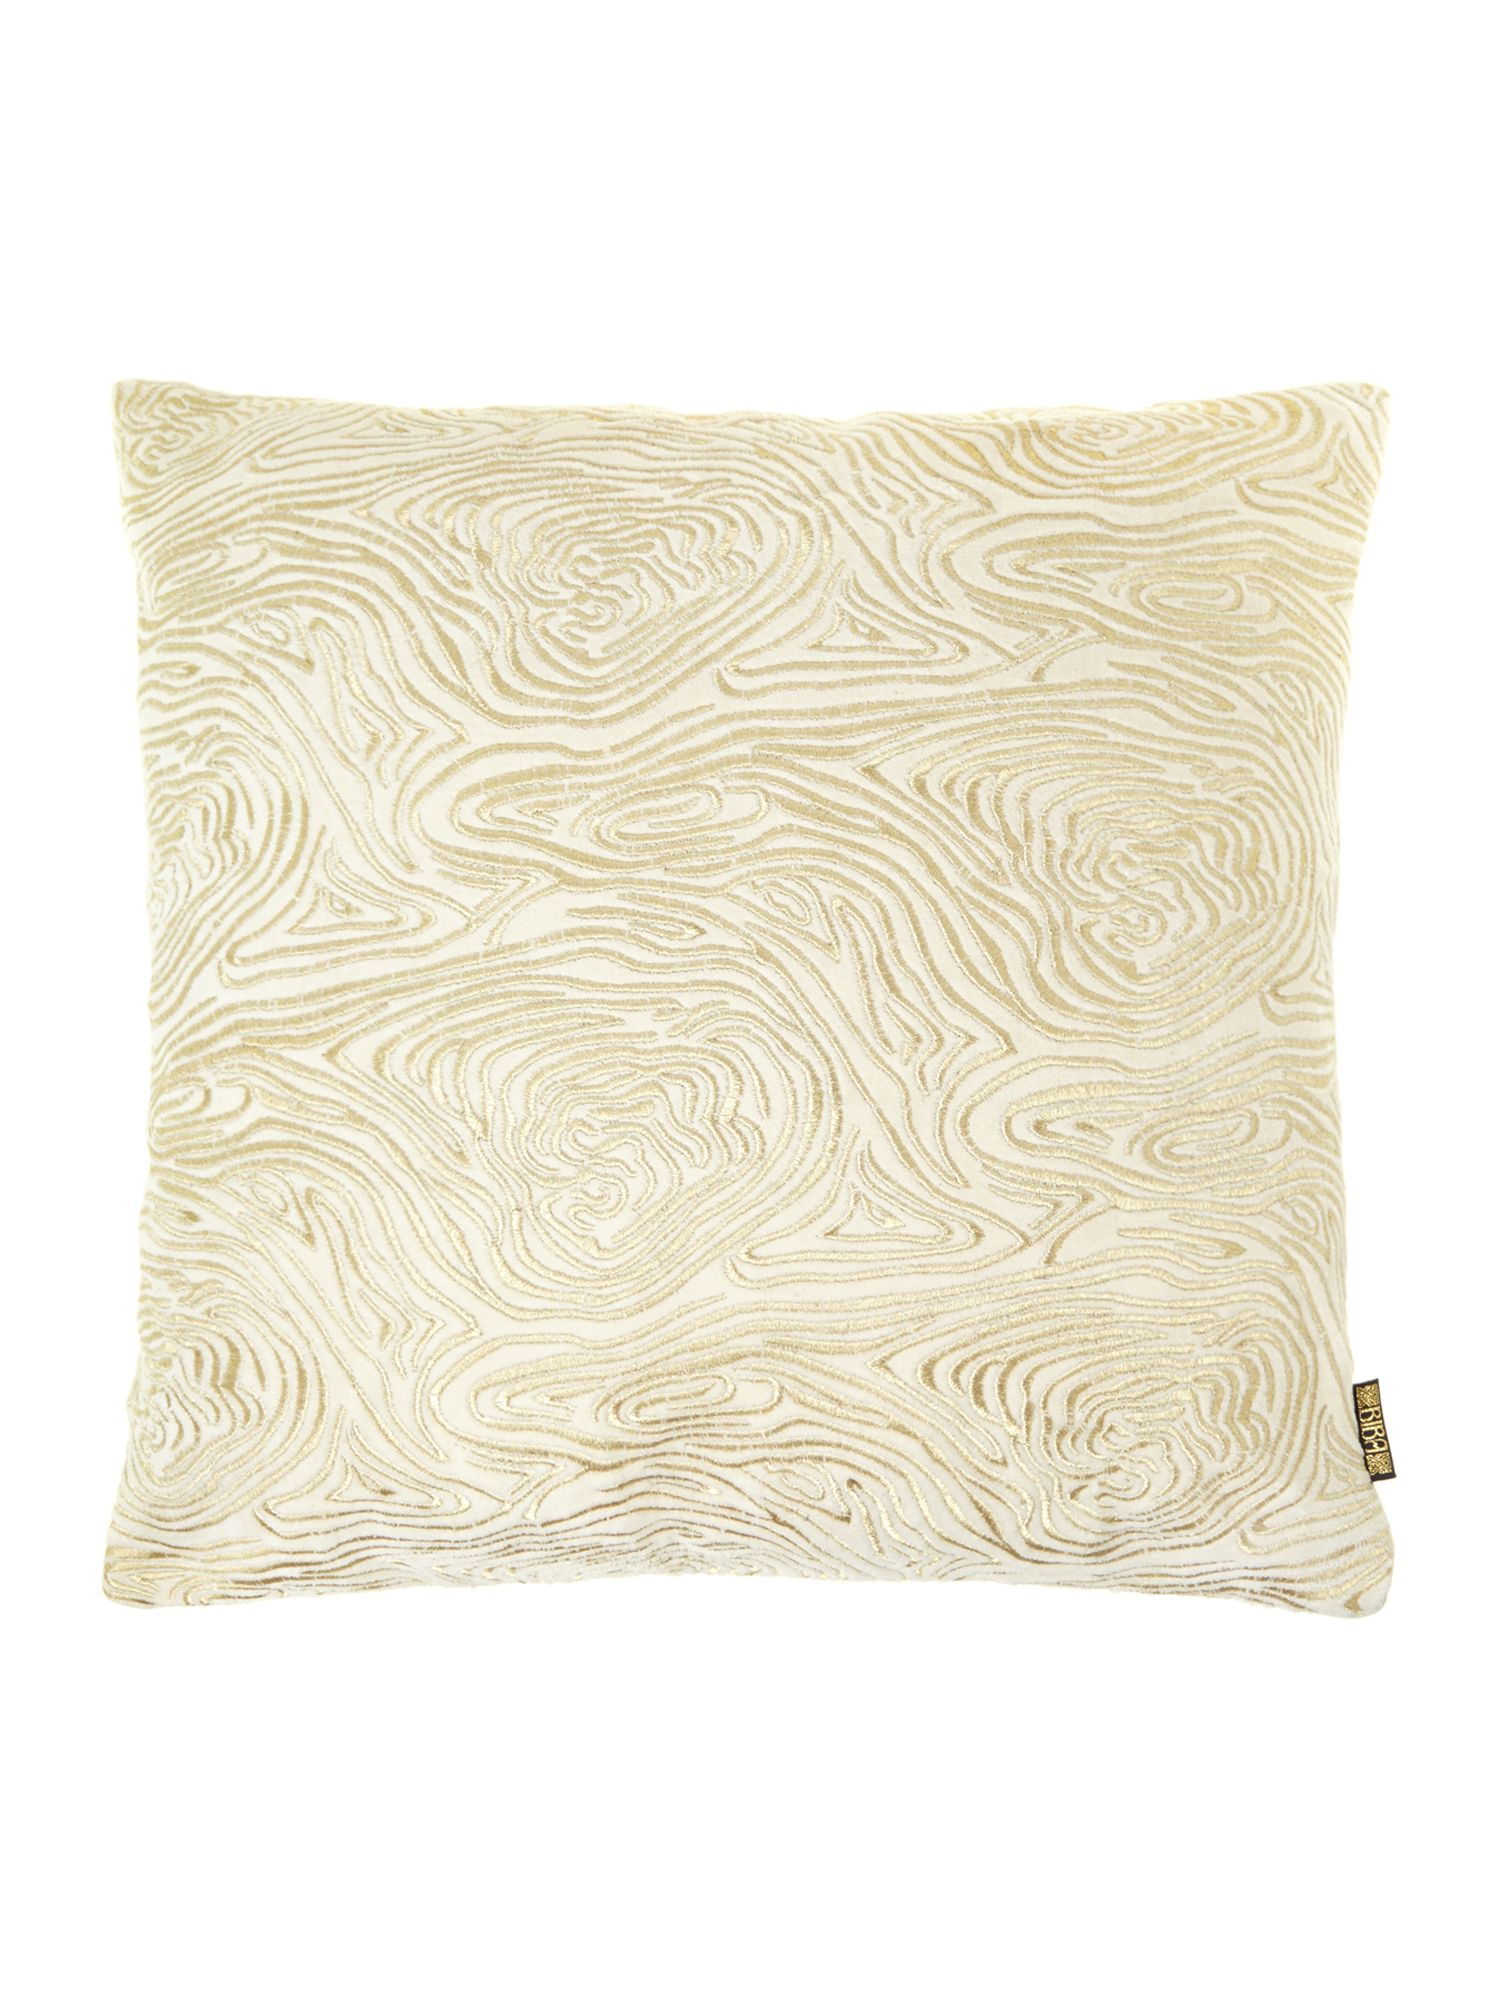 Cream swirl embroided cushion